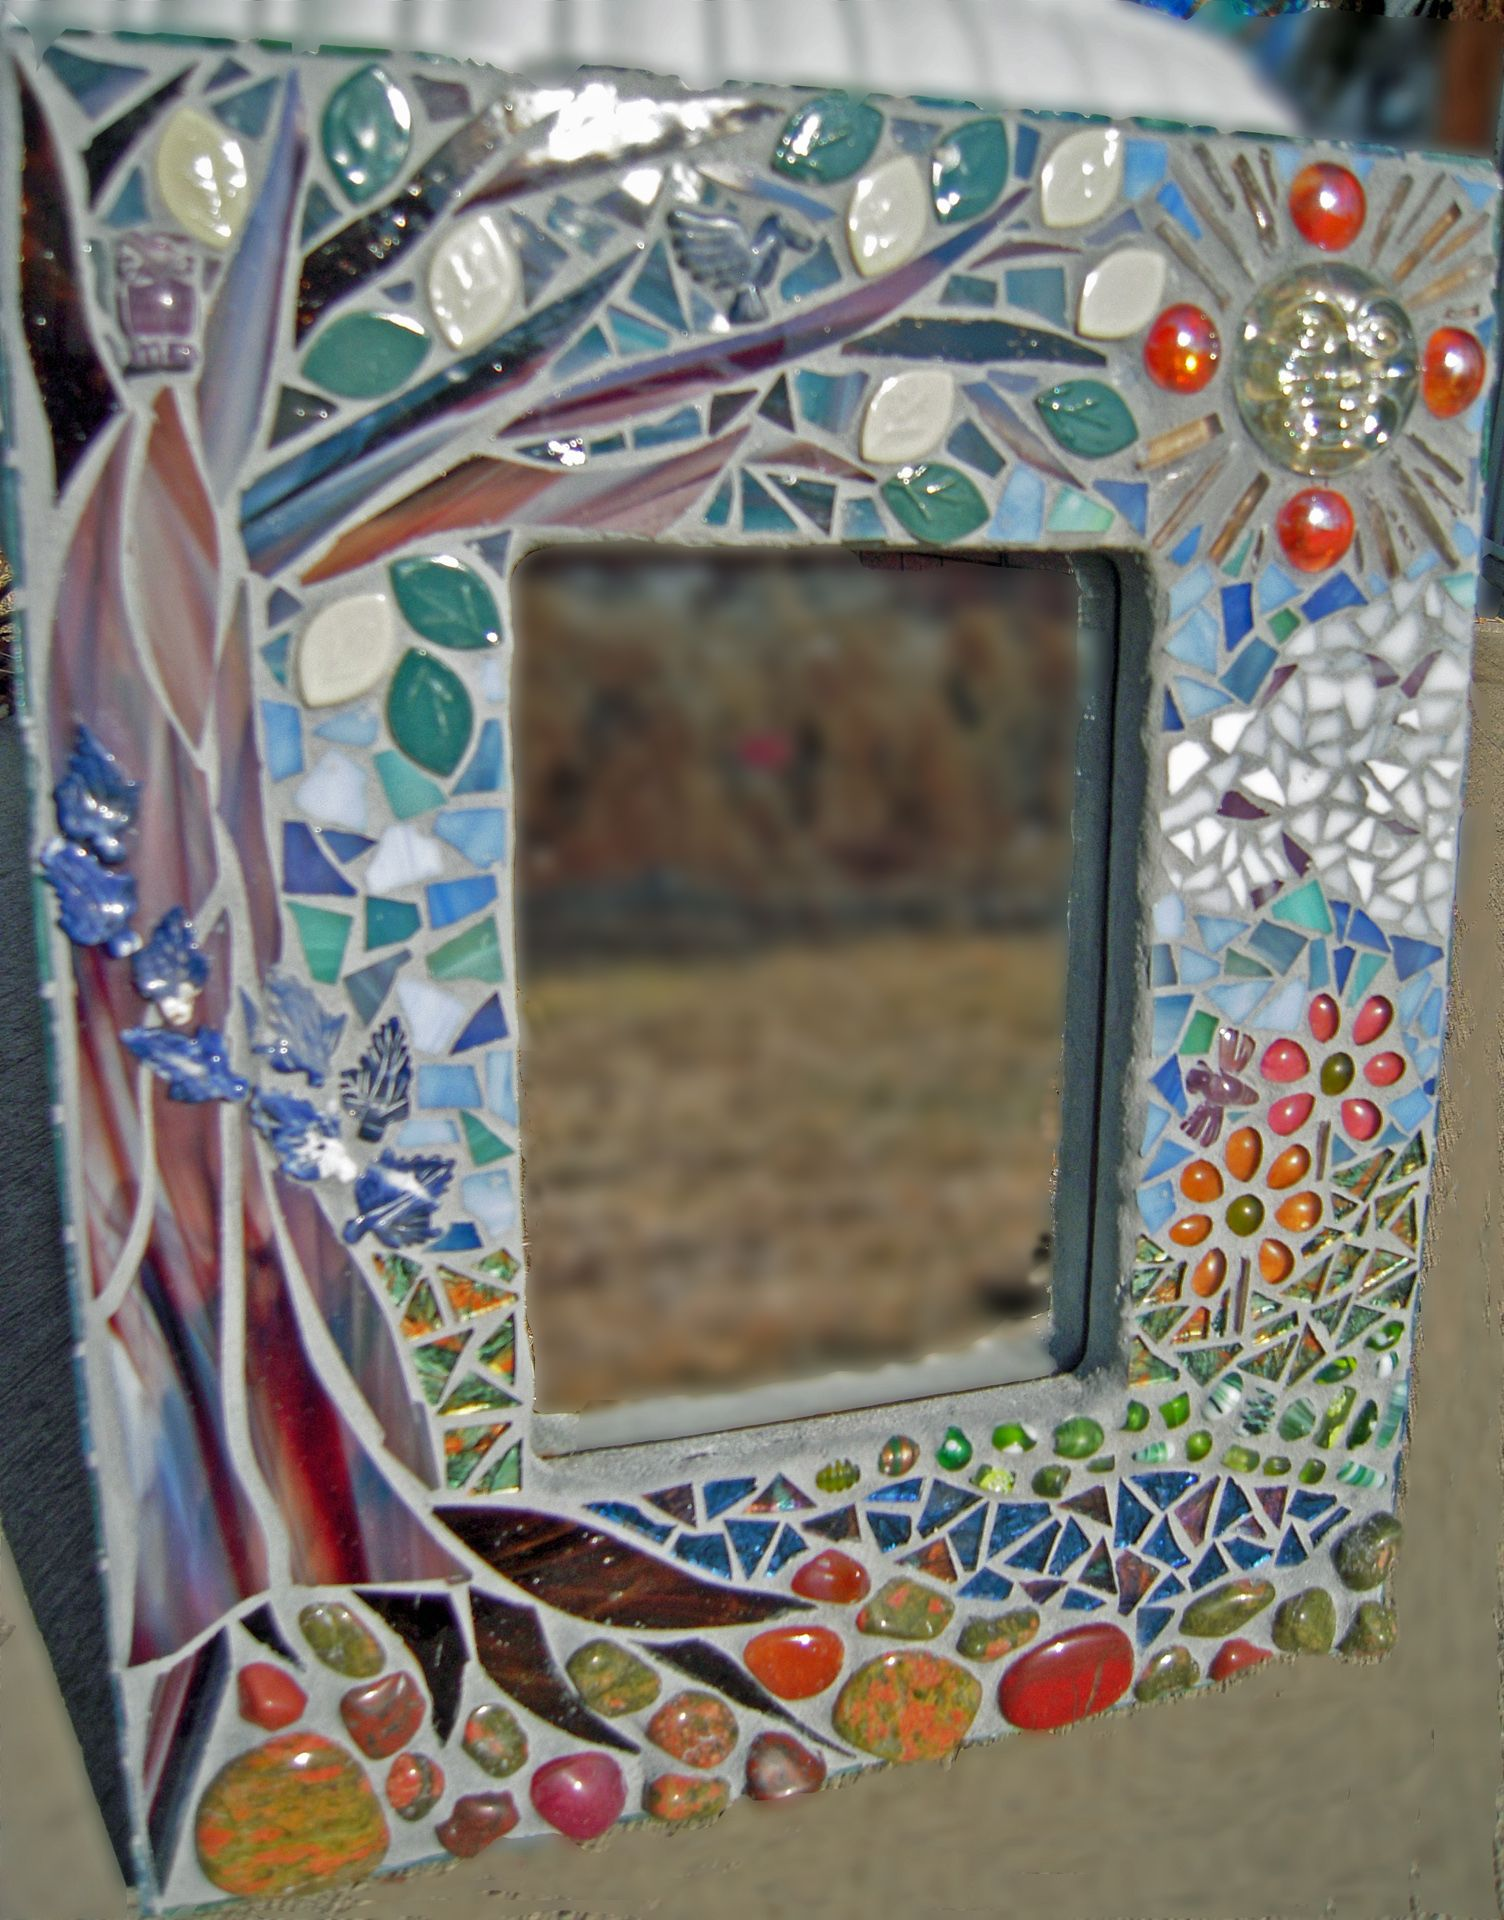 Spiegel Mosaik Finding The Perfect Tree, Glass Mosaic Mirror, Diane